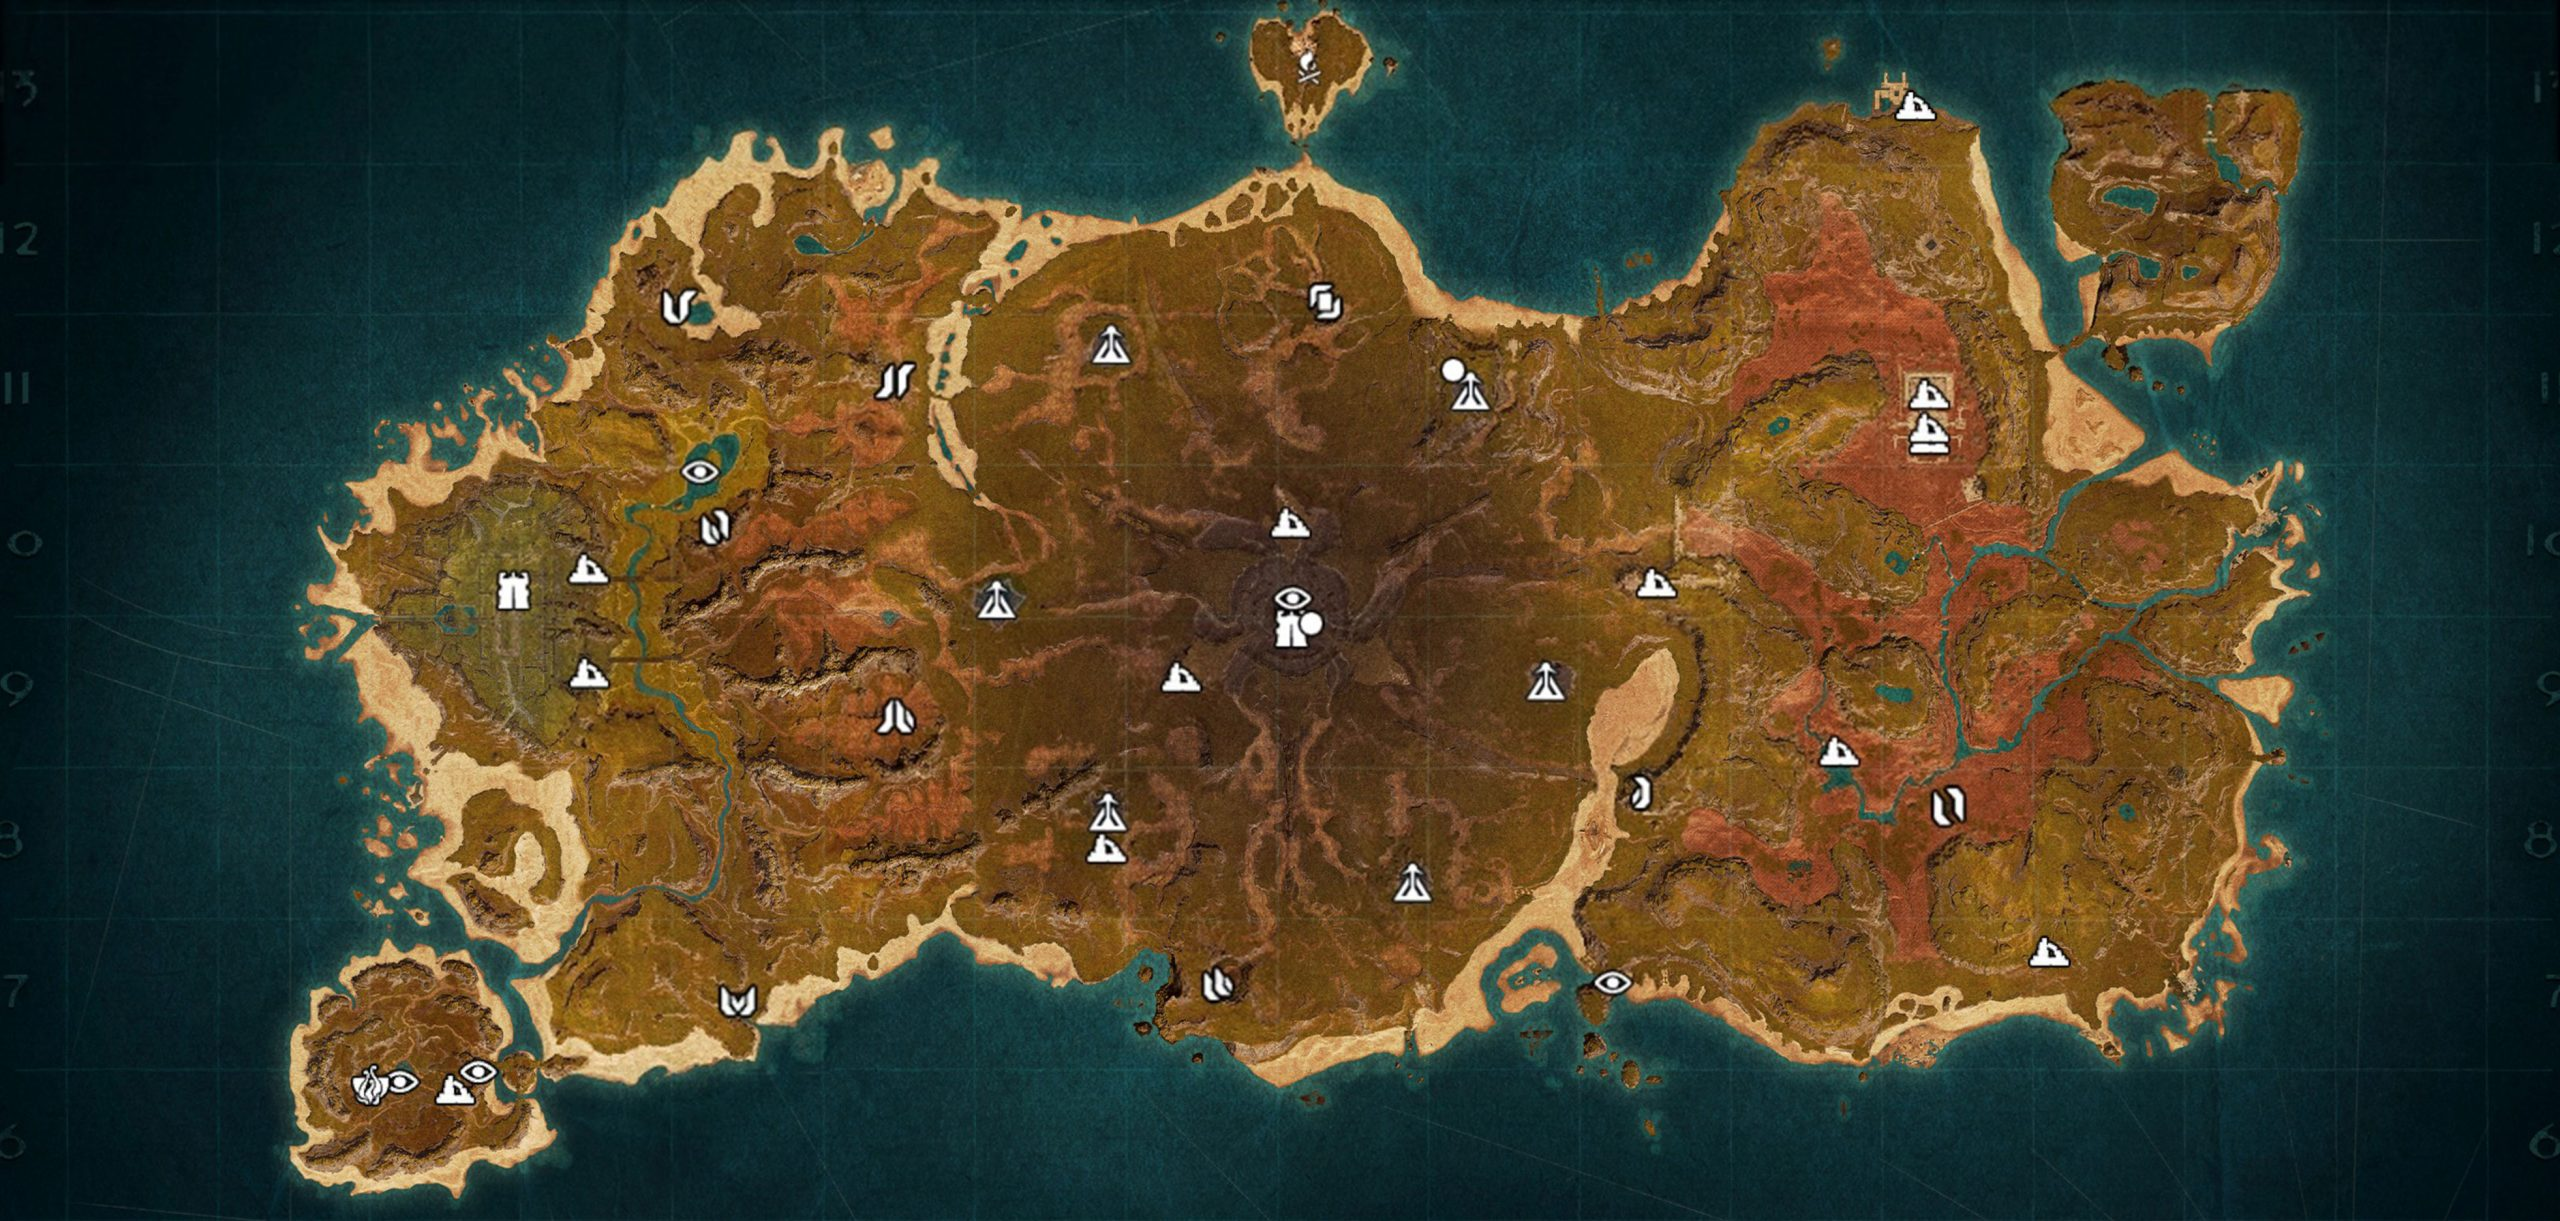 Conan-Exiles-Isle-of-Siptah-Map-Full